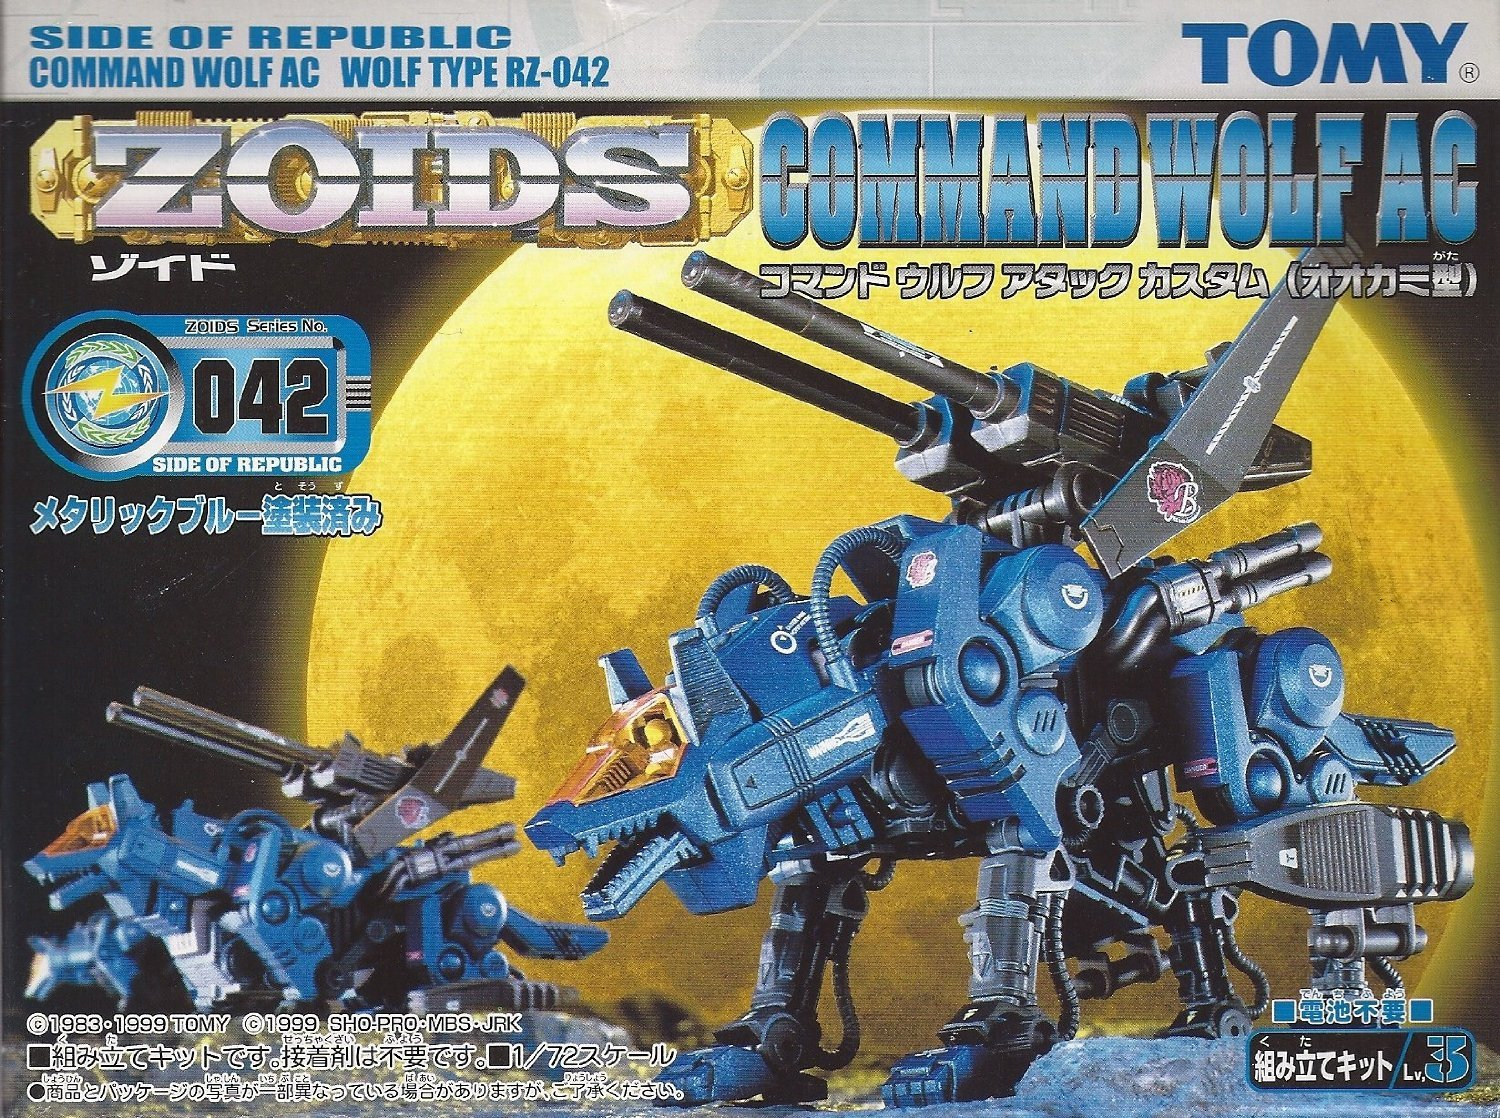 Amazon.com: 1/72 ZOIDS Zoids RZ-042 Command Wolf Attack Custom (wolf type)  (japan import): Toys & Games